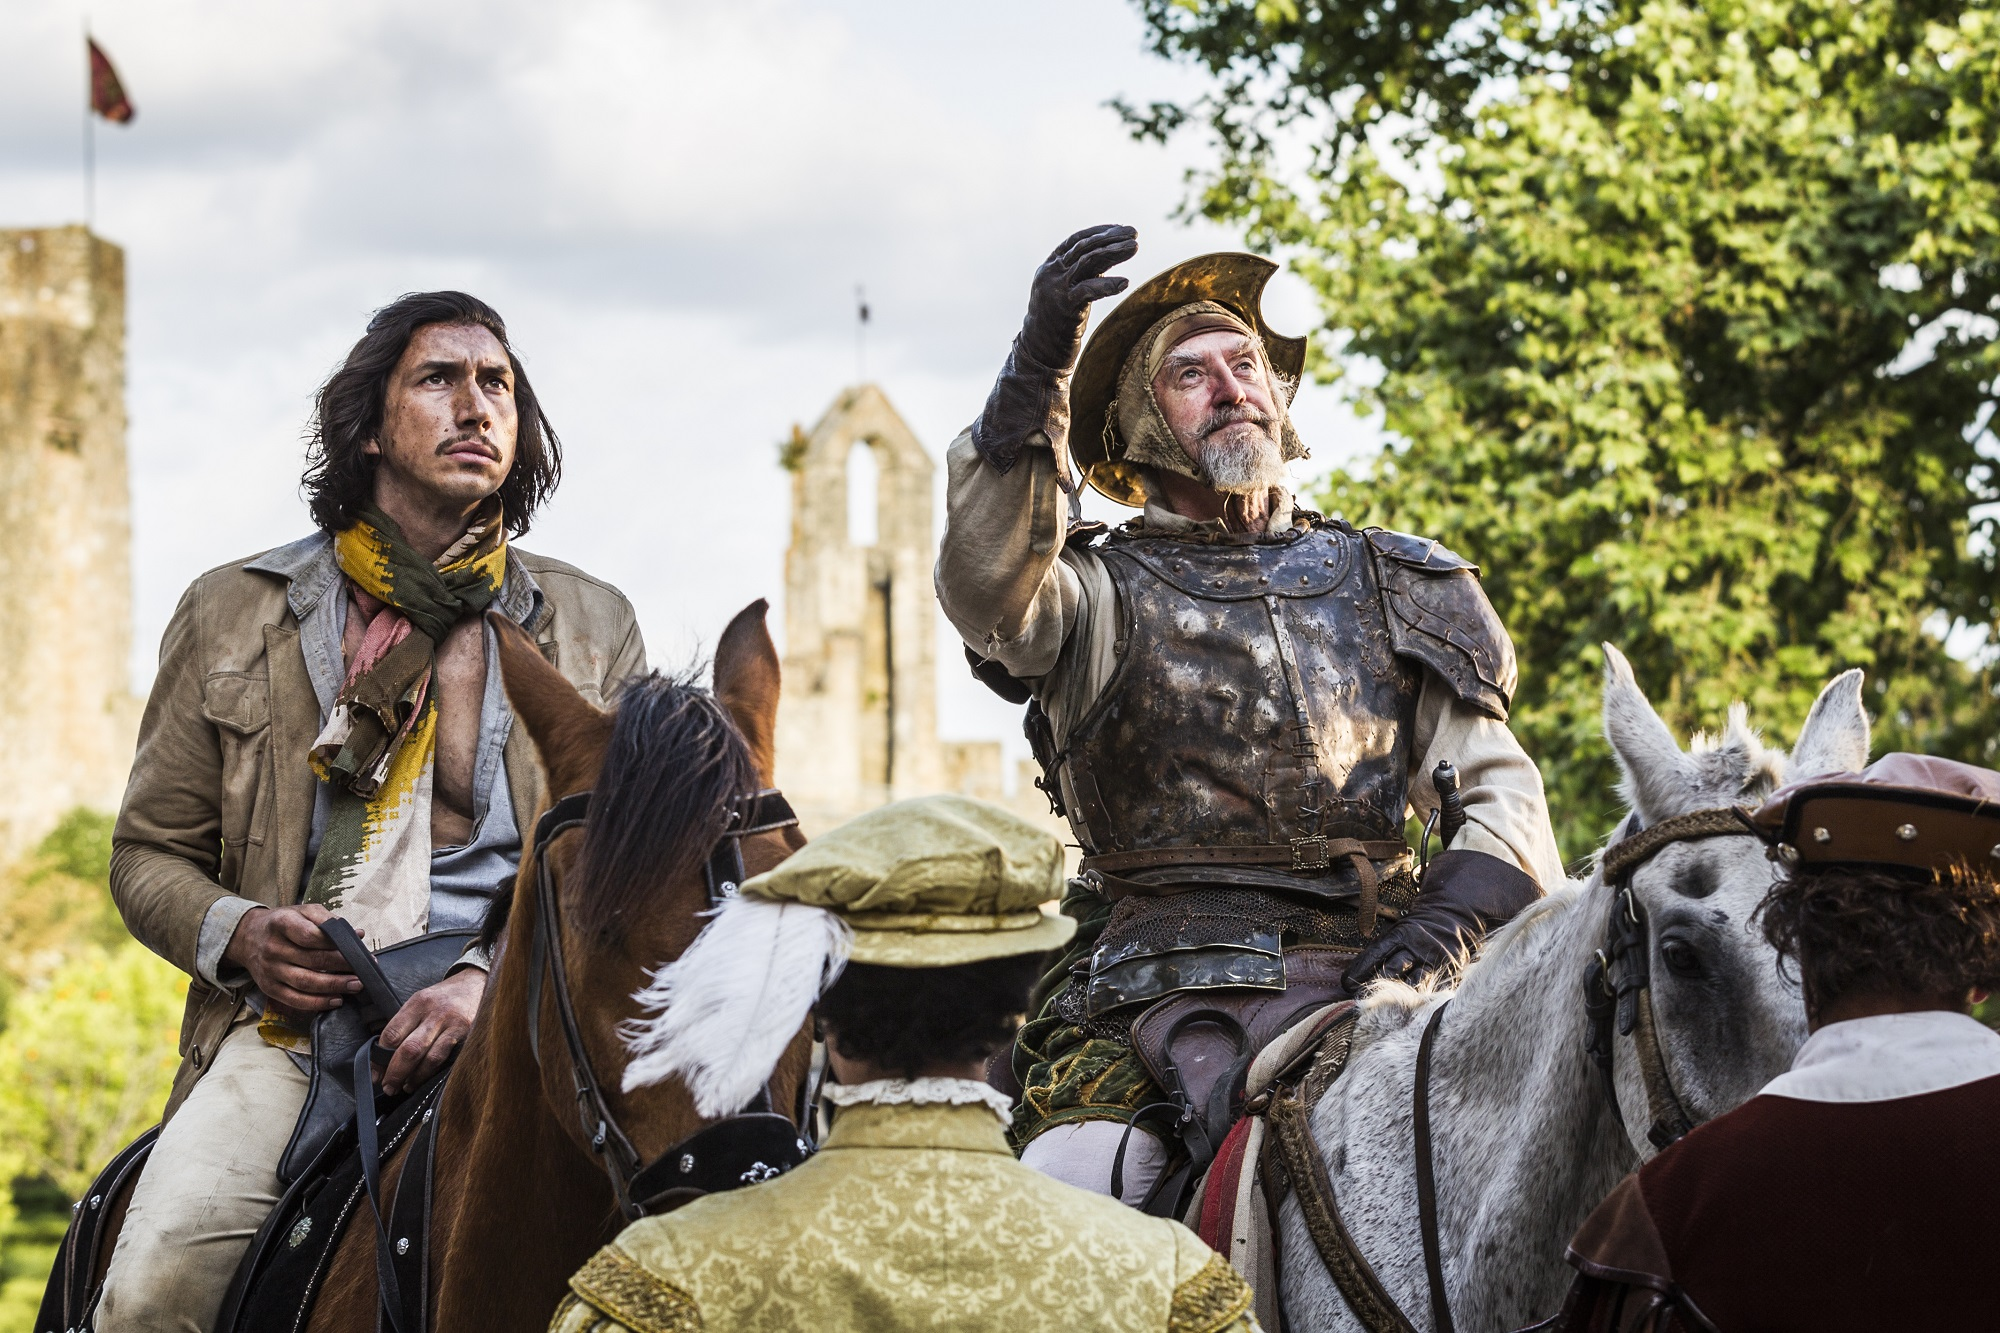 Terry Gilliam's long-awaited 'Don Quixote' film screens in